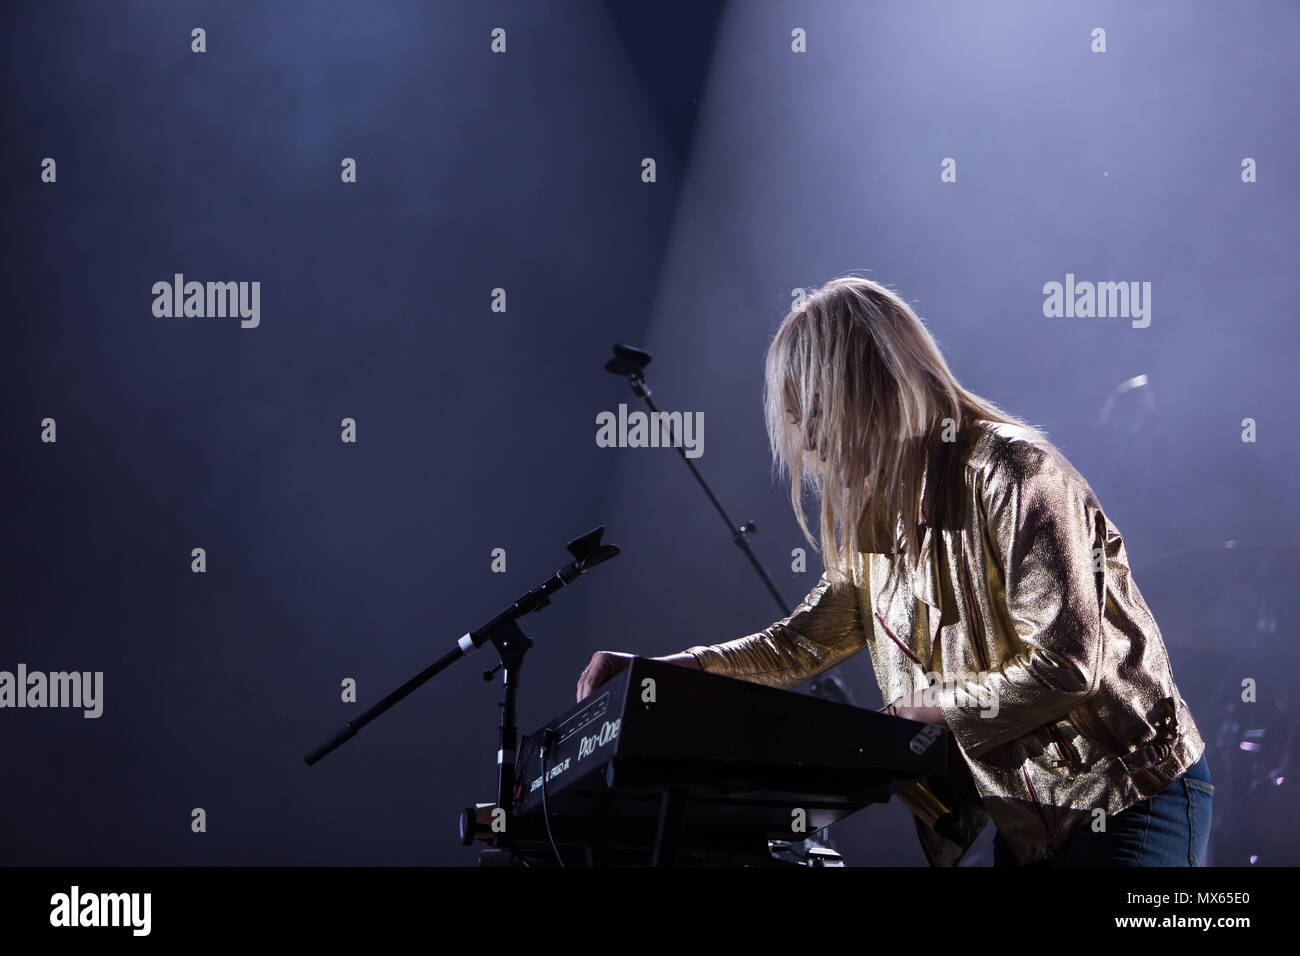 Toronto, CANADA. 02nd June 2018, Emily Haines of Canadian Pop Rock band Metric performas at the 2018 Field Trip Music & Arts Festival in Toronto. Credit: Bobby Singh/Alamay Live News Credit: topconcertphoto/Alamy Live News Stock Photo